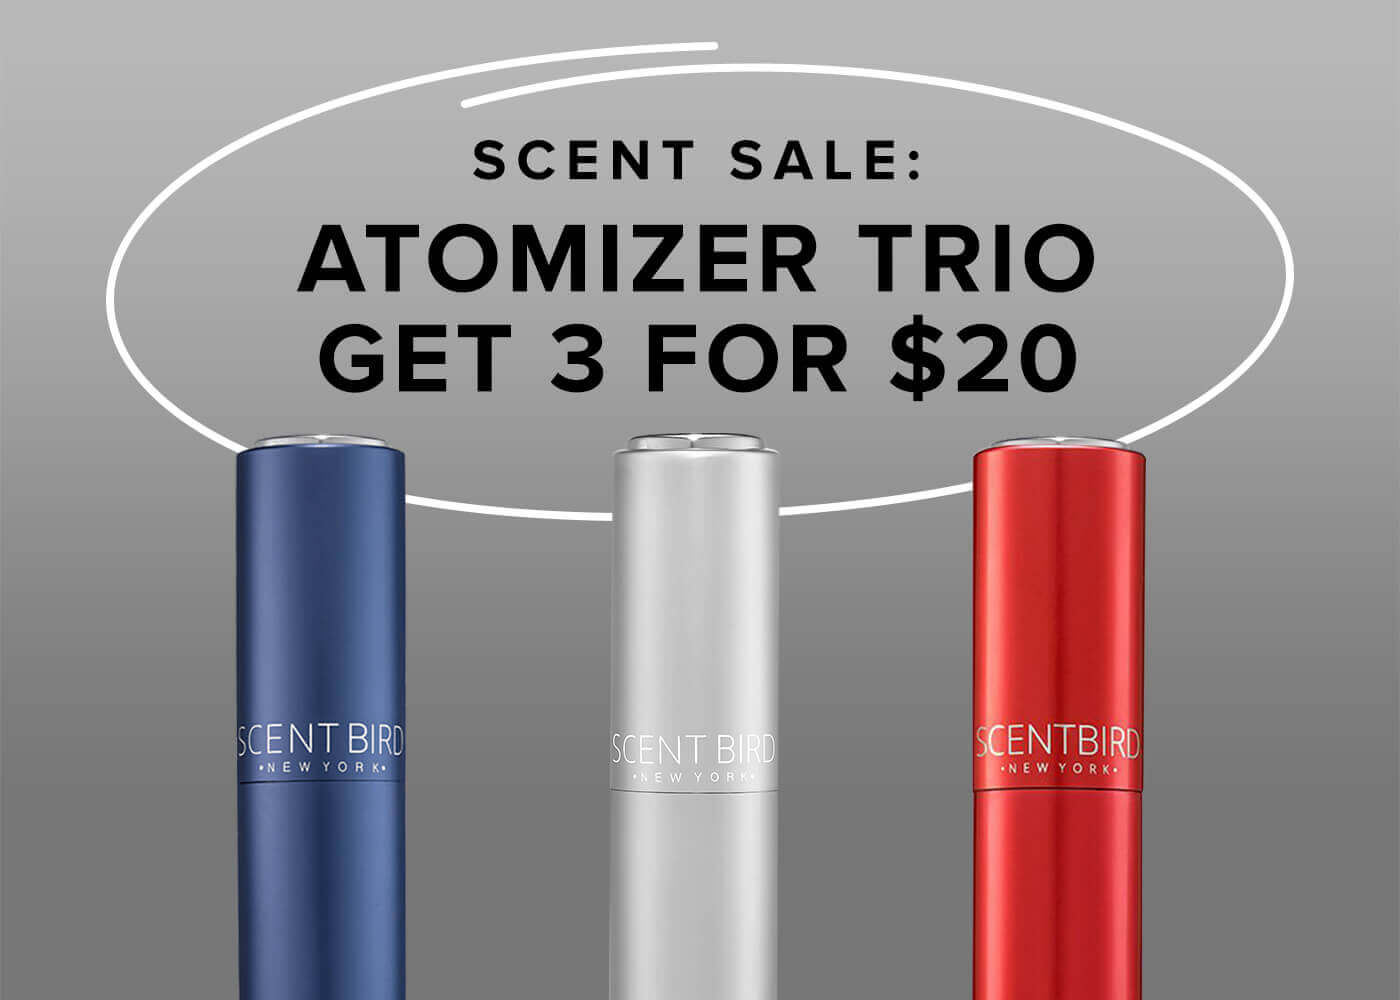 Atomizer Trio